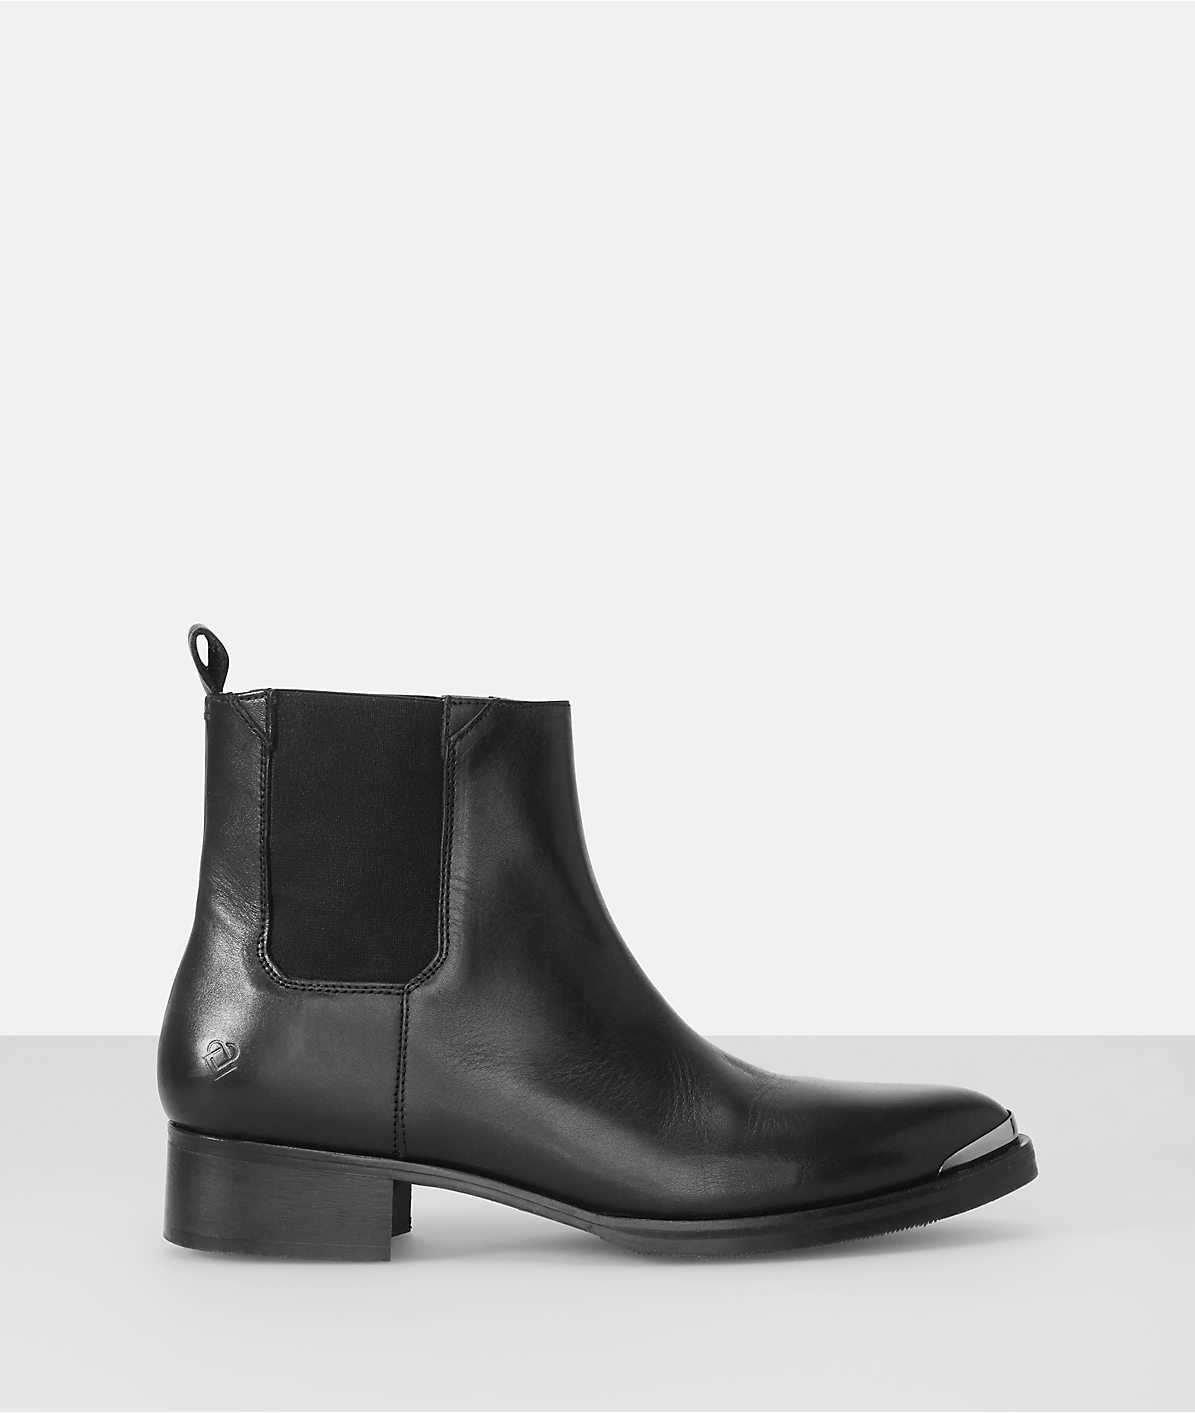 Ankle boots LF175020R from liebeskind